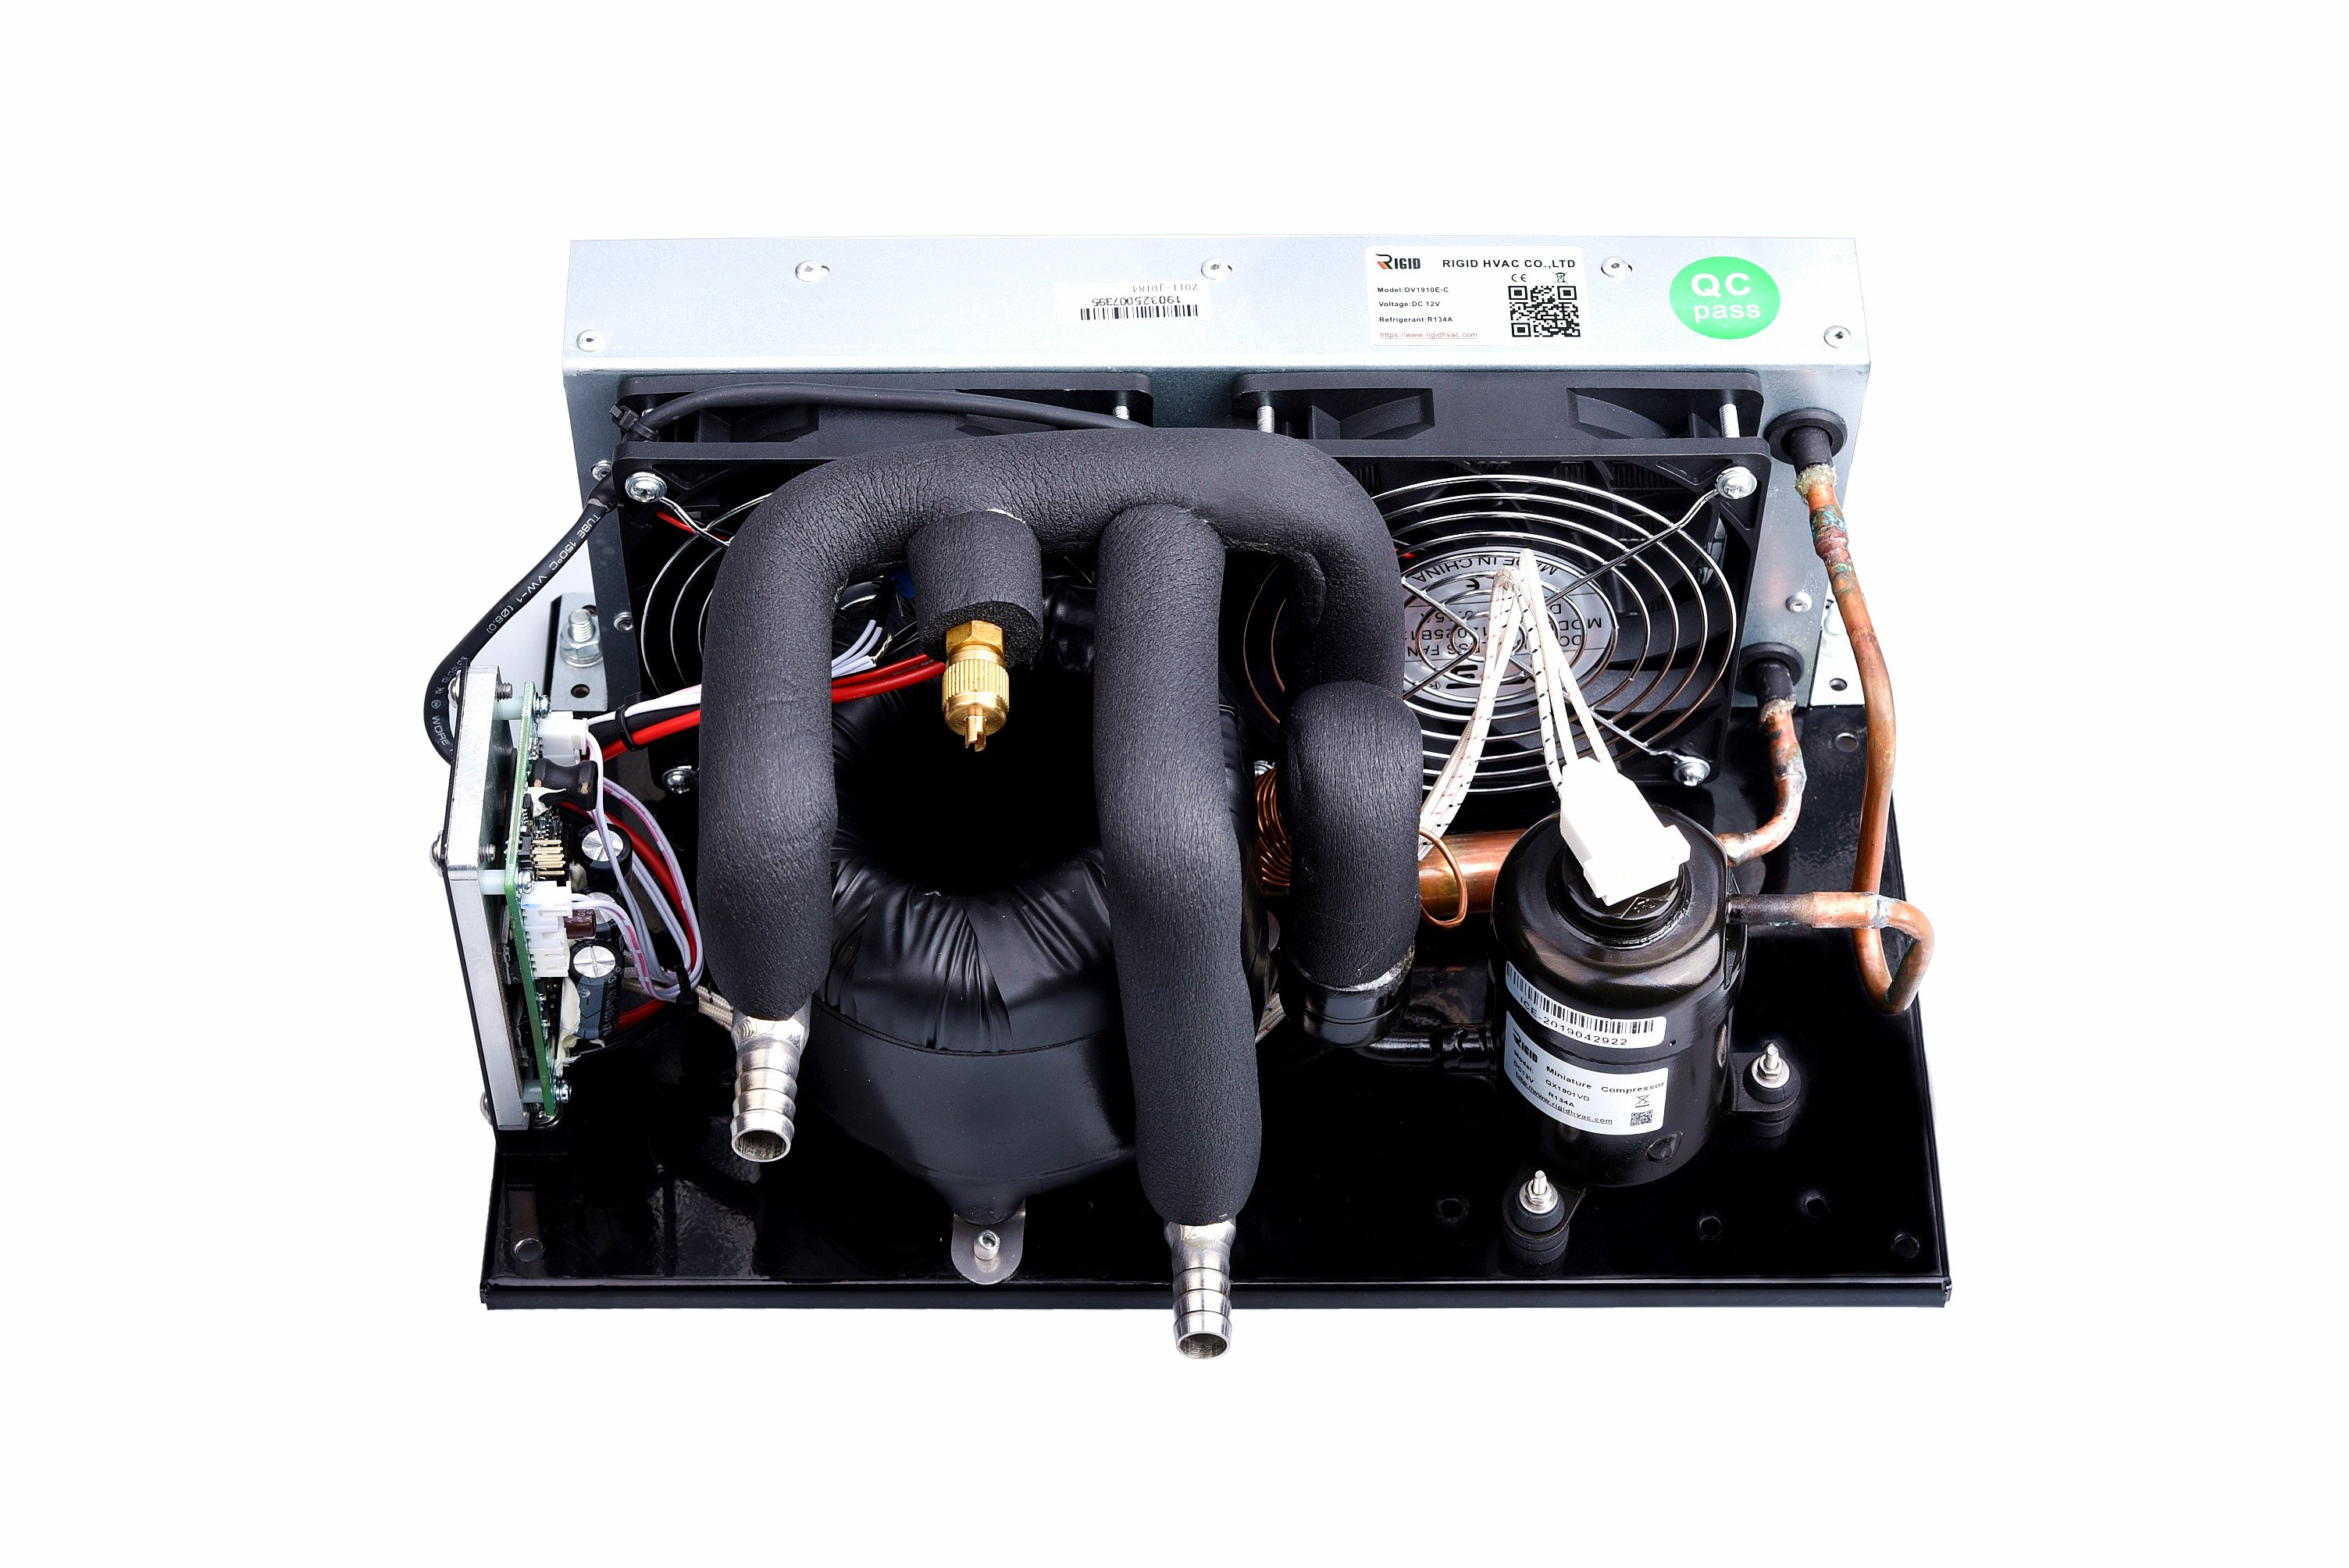 https://www.rigidchill.com/wp-content/uploads/2020/04/Coaxial-Liquid-Chiller-RIGID-3.jpg